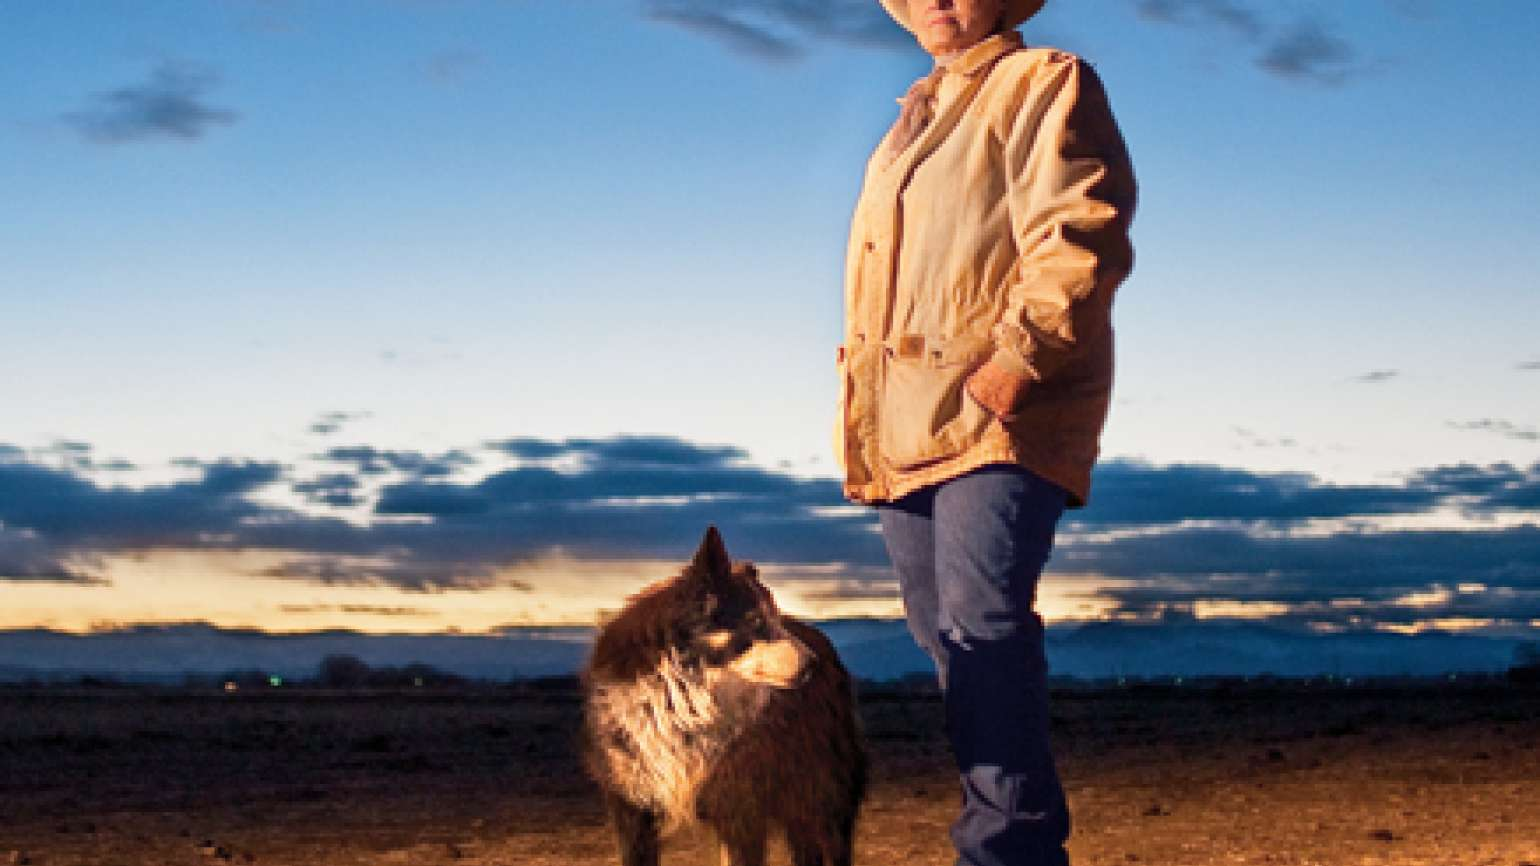 Susan Stone and her dog Smoky Joe